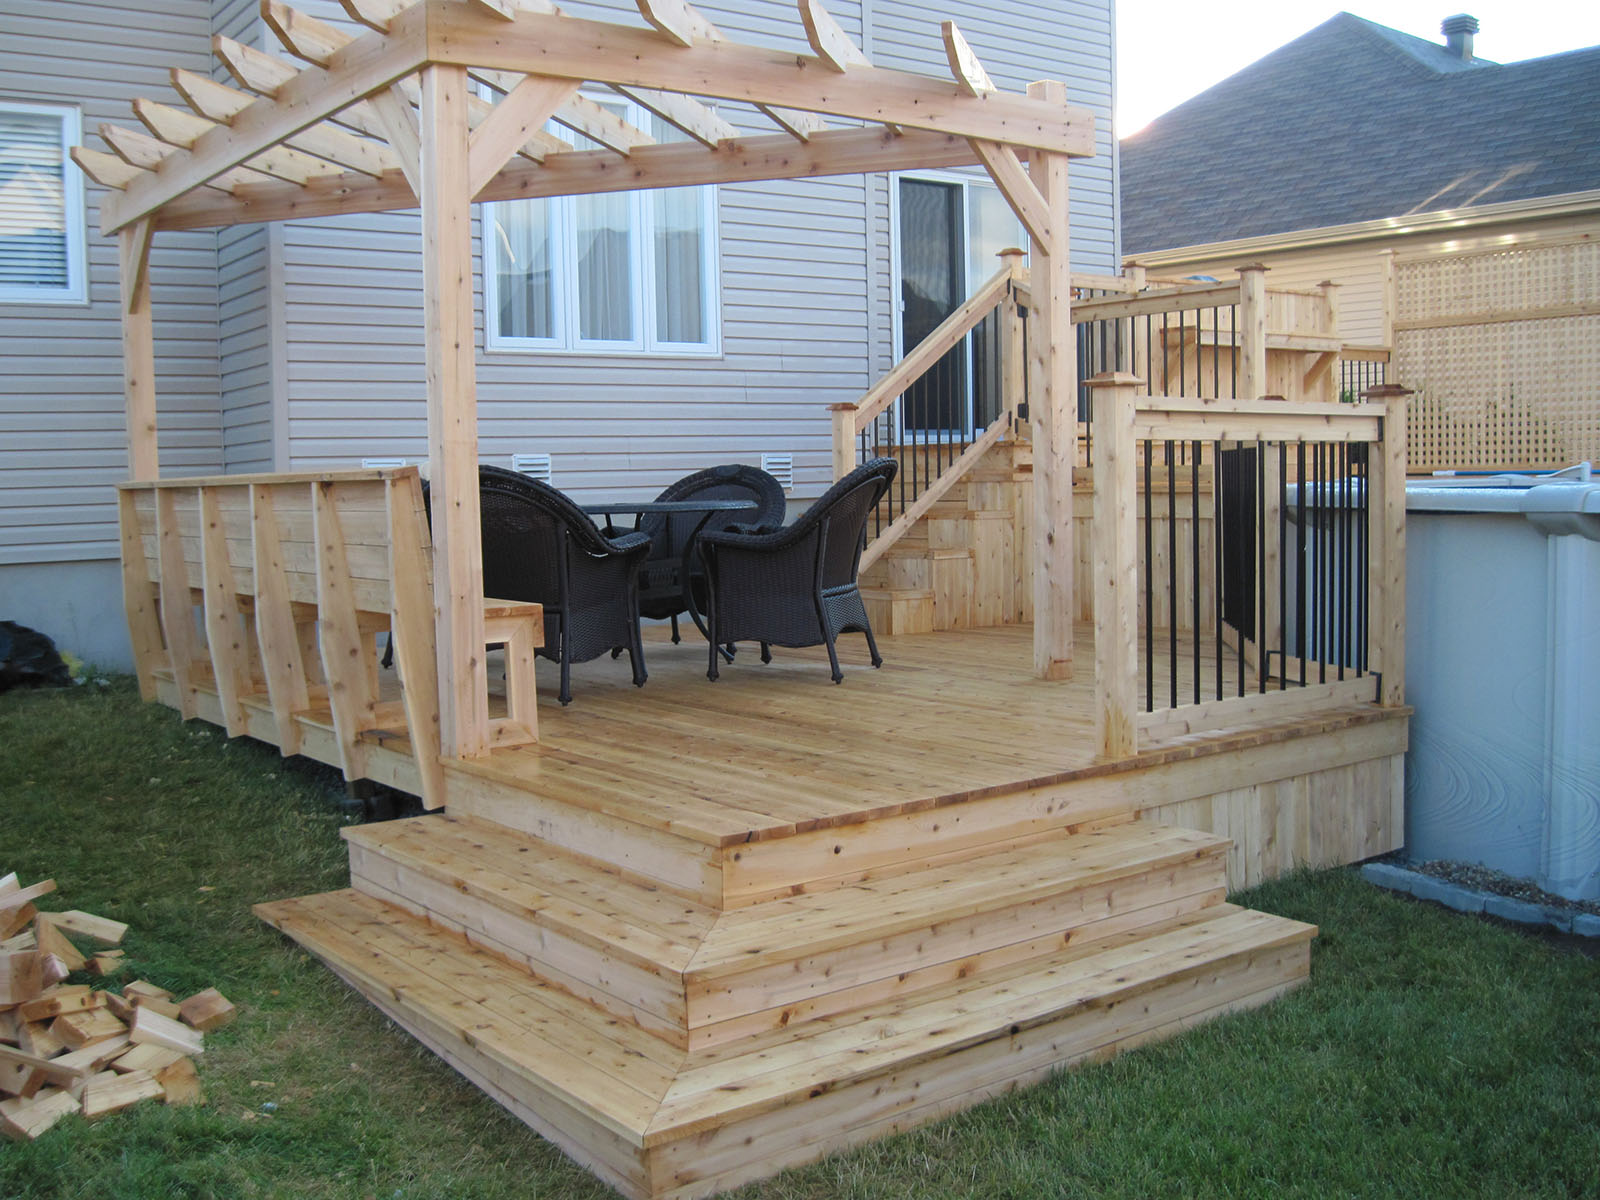 Sunrise paysagiste patio pergola et cl tures de bois for Exemple de pergola en bois